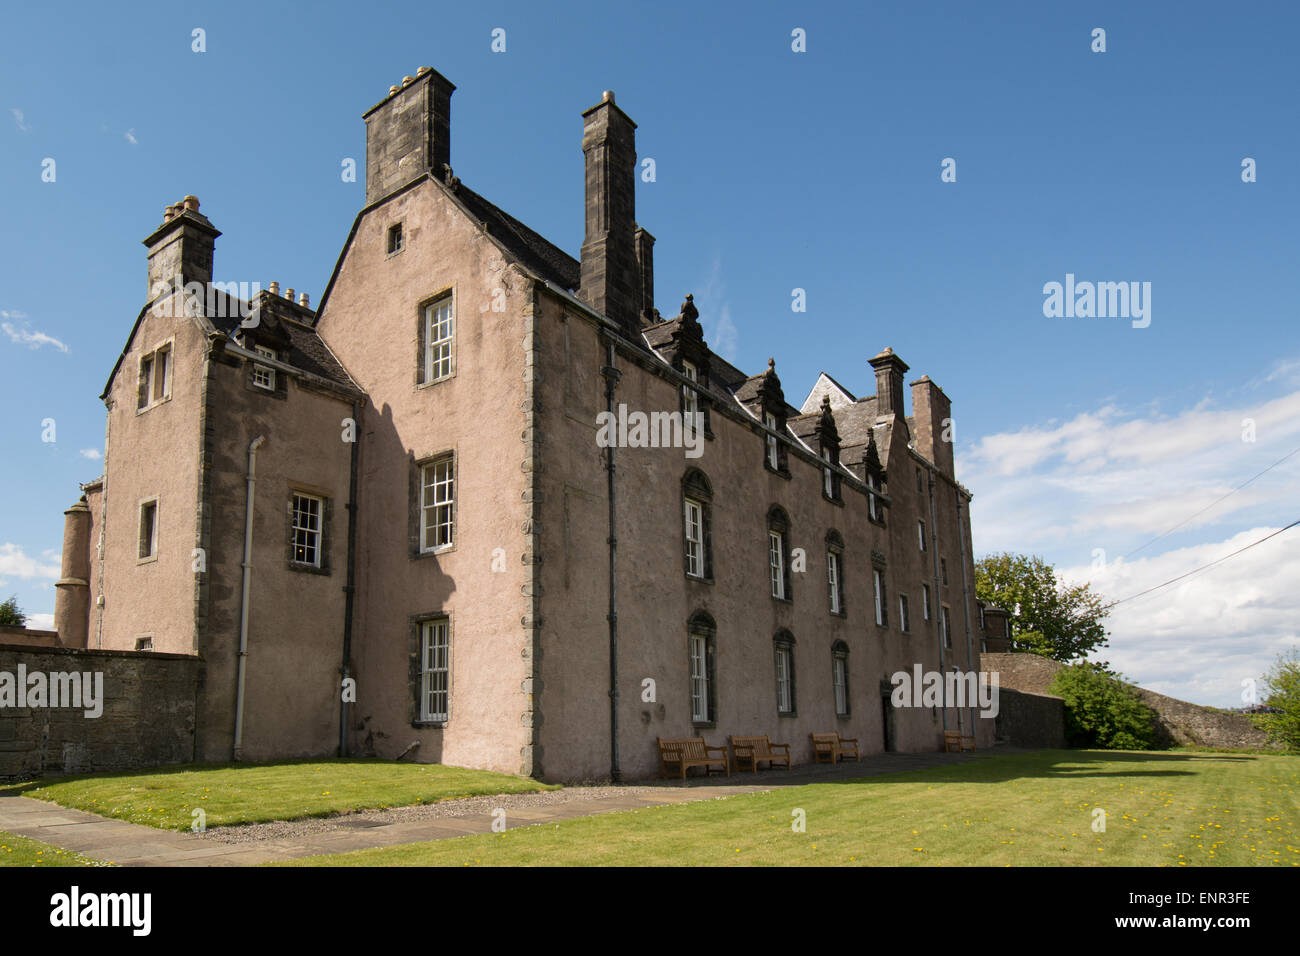 rear of Argyll's Lodging - Scotland's most complete example of a 17th century townhouse - Stock Image